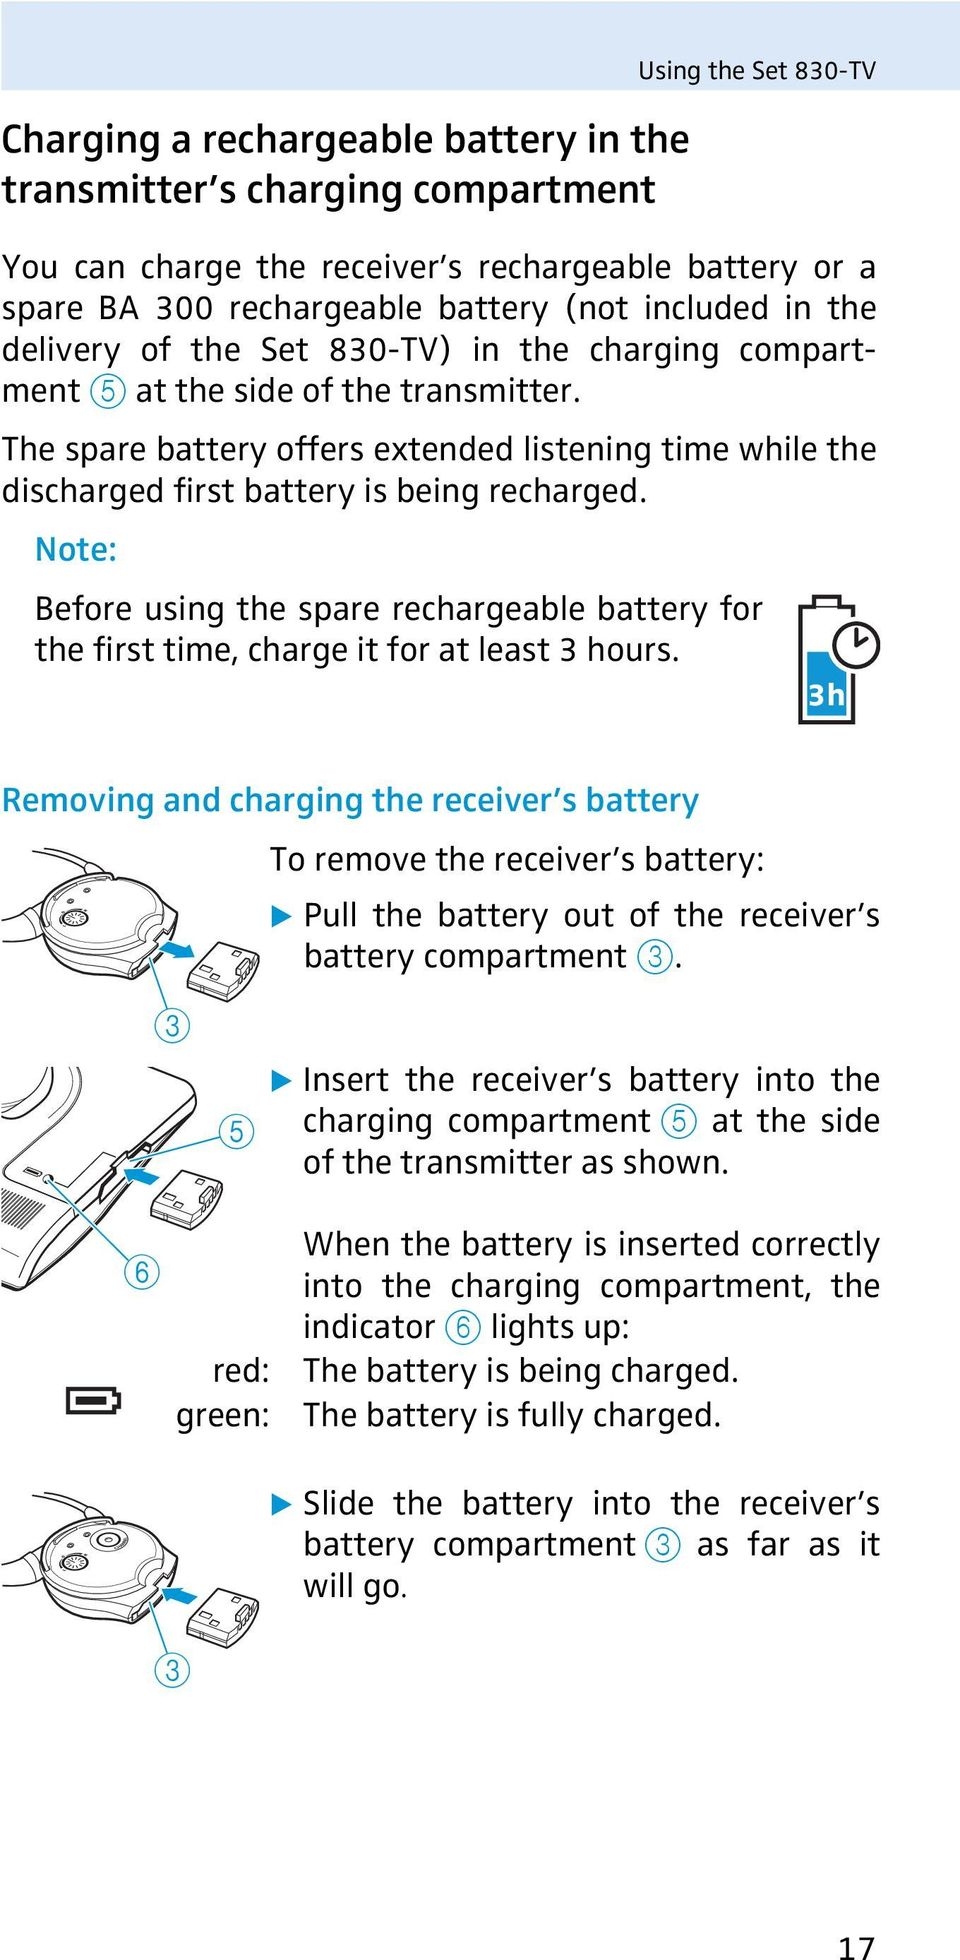 Note: Before using the spare rechargeable battery for the first time, charge it for at least 3 hours.